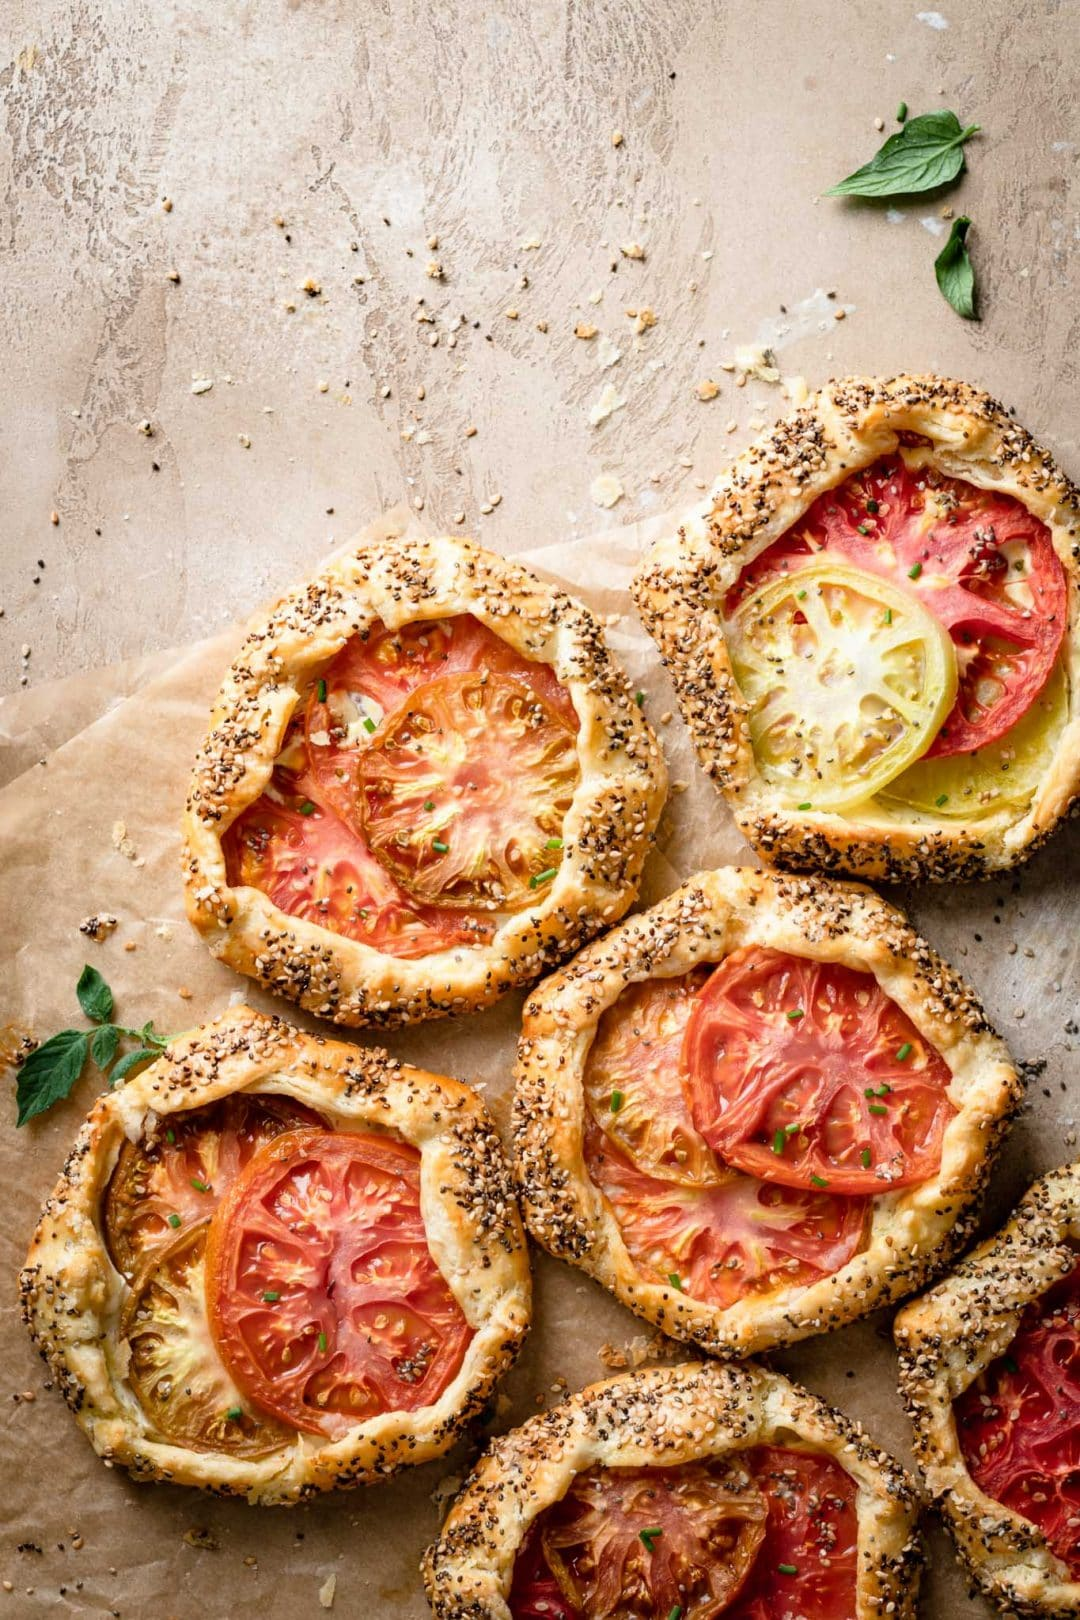 Savory Pies made with tomato and goat cheese.